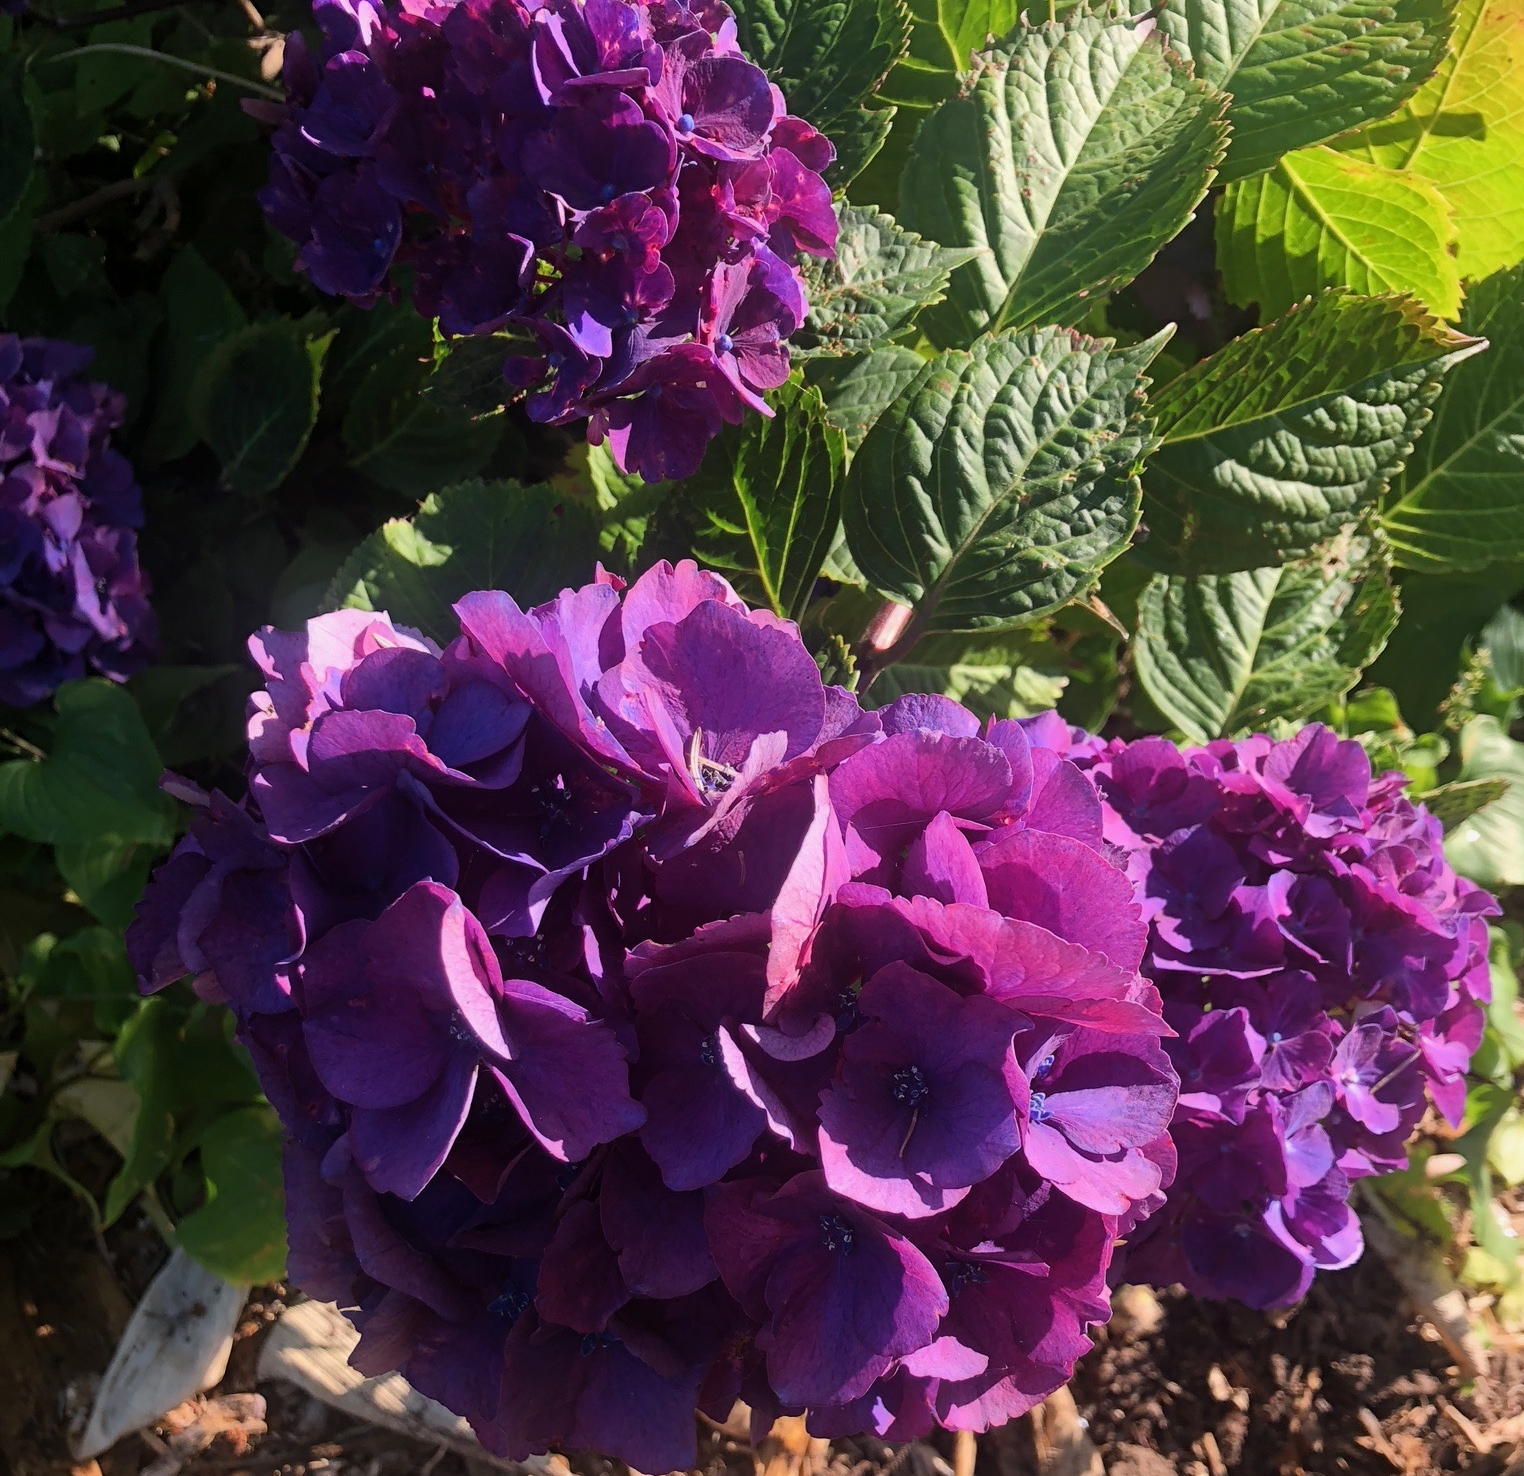 Hydrangeas come in so many colors, like this deep purple. They adorn the landscape all around western Oregon.